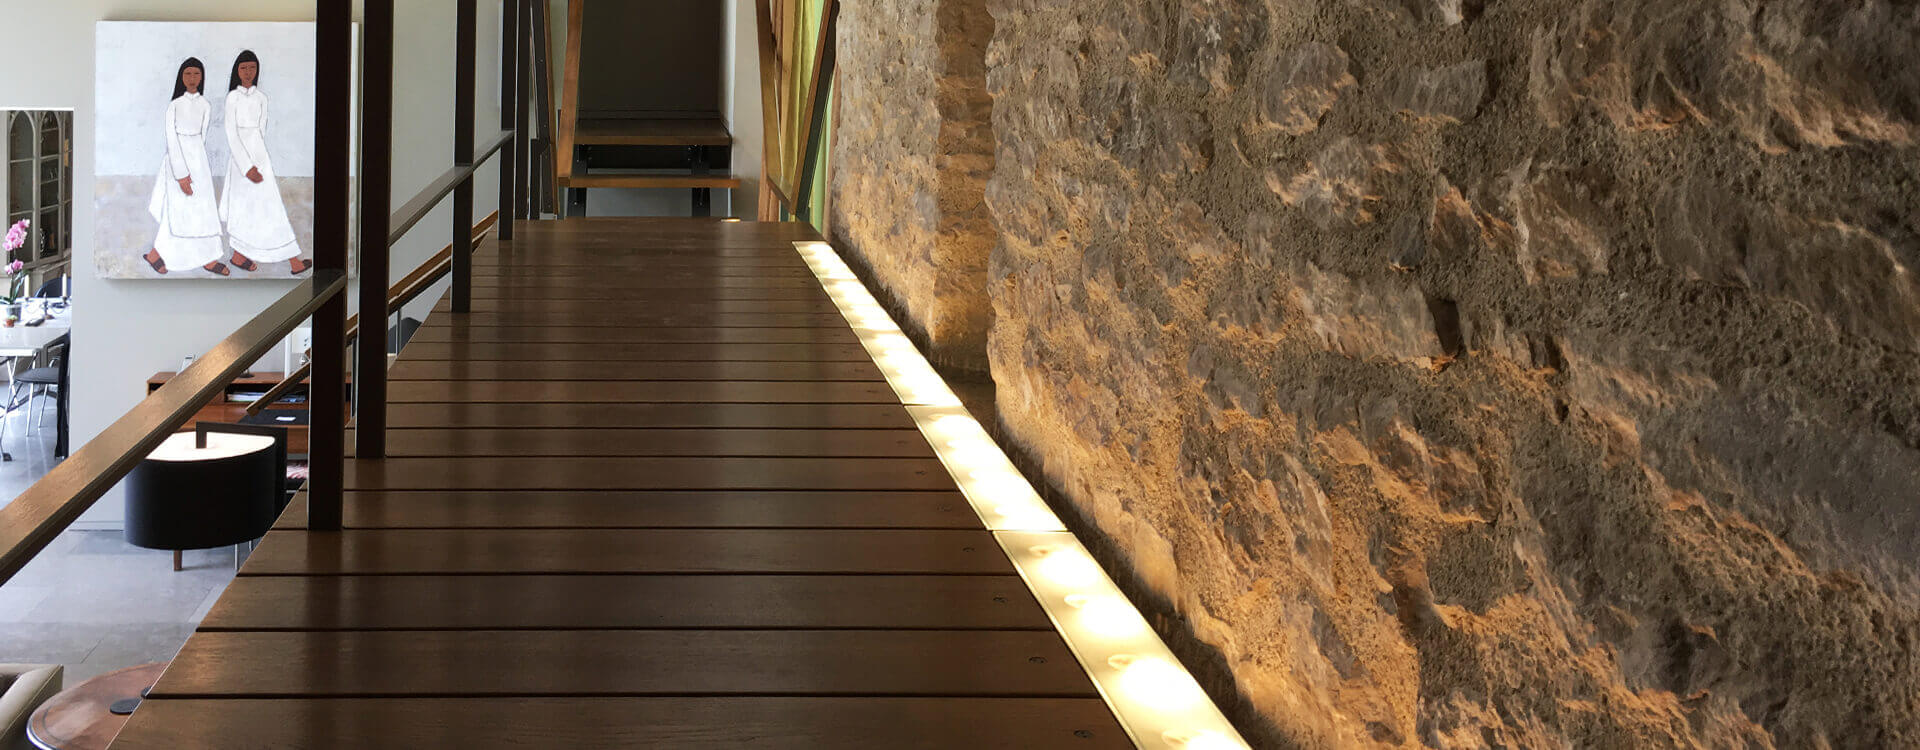 Wooden plank floor hallway with LED Strip lighting